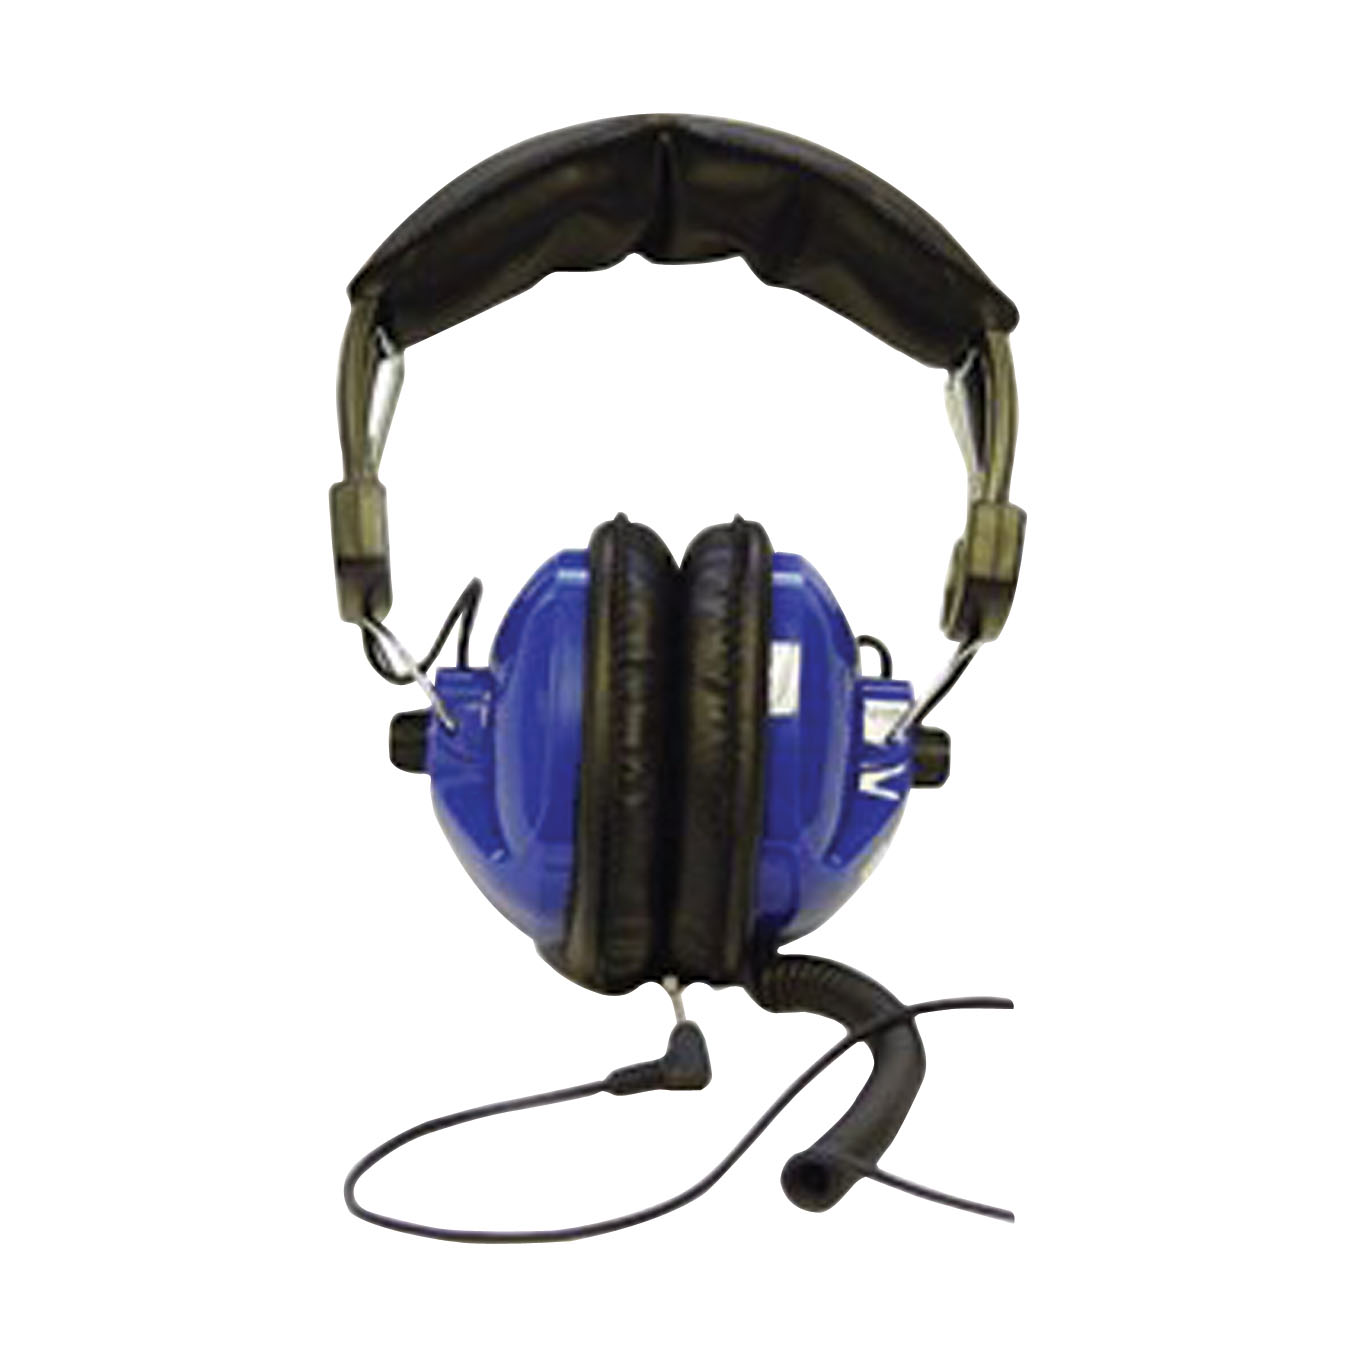 TP60 - Uniden Racing Headset for Scanners